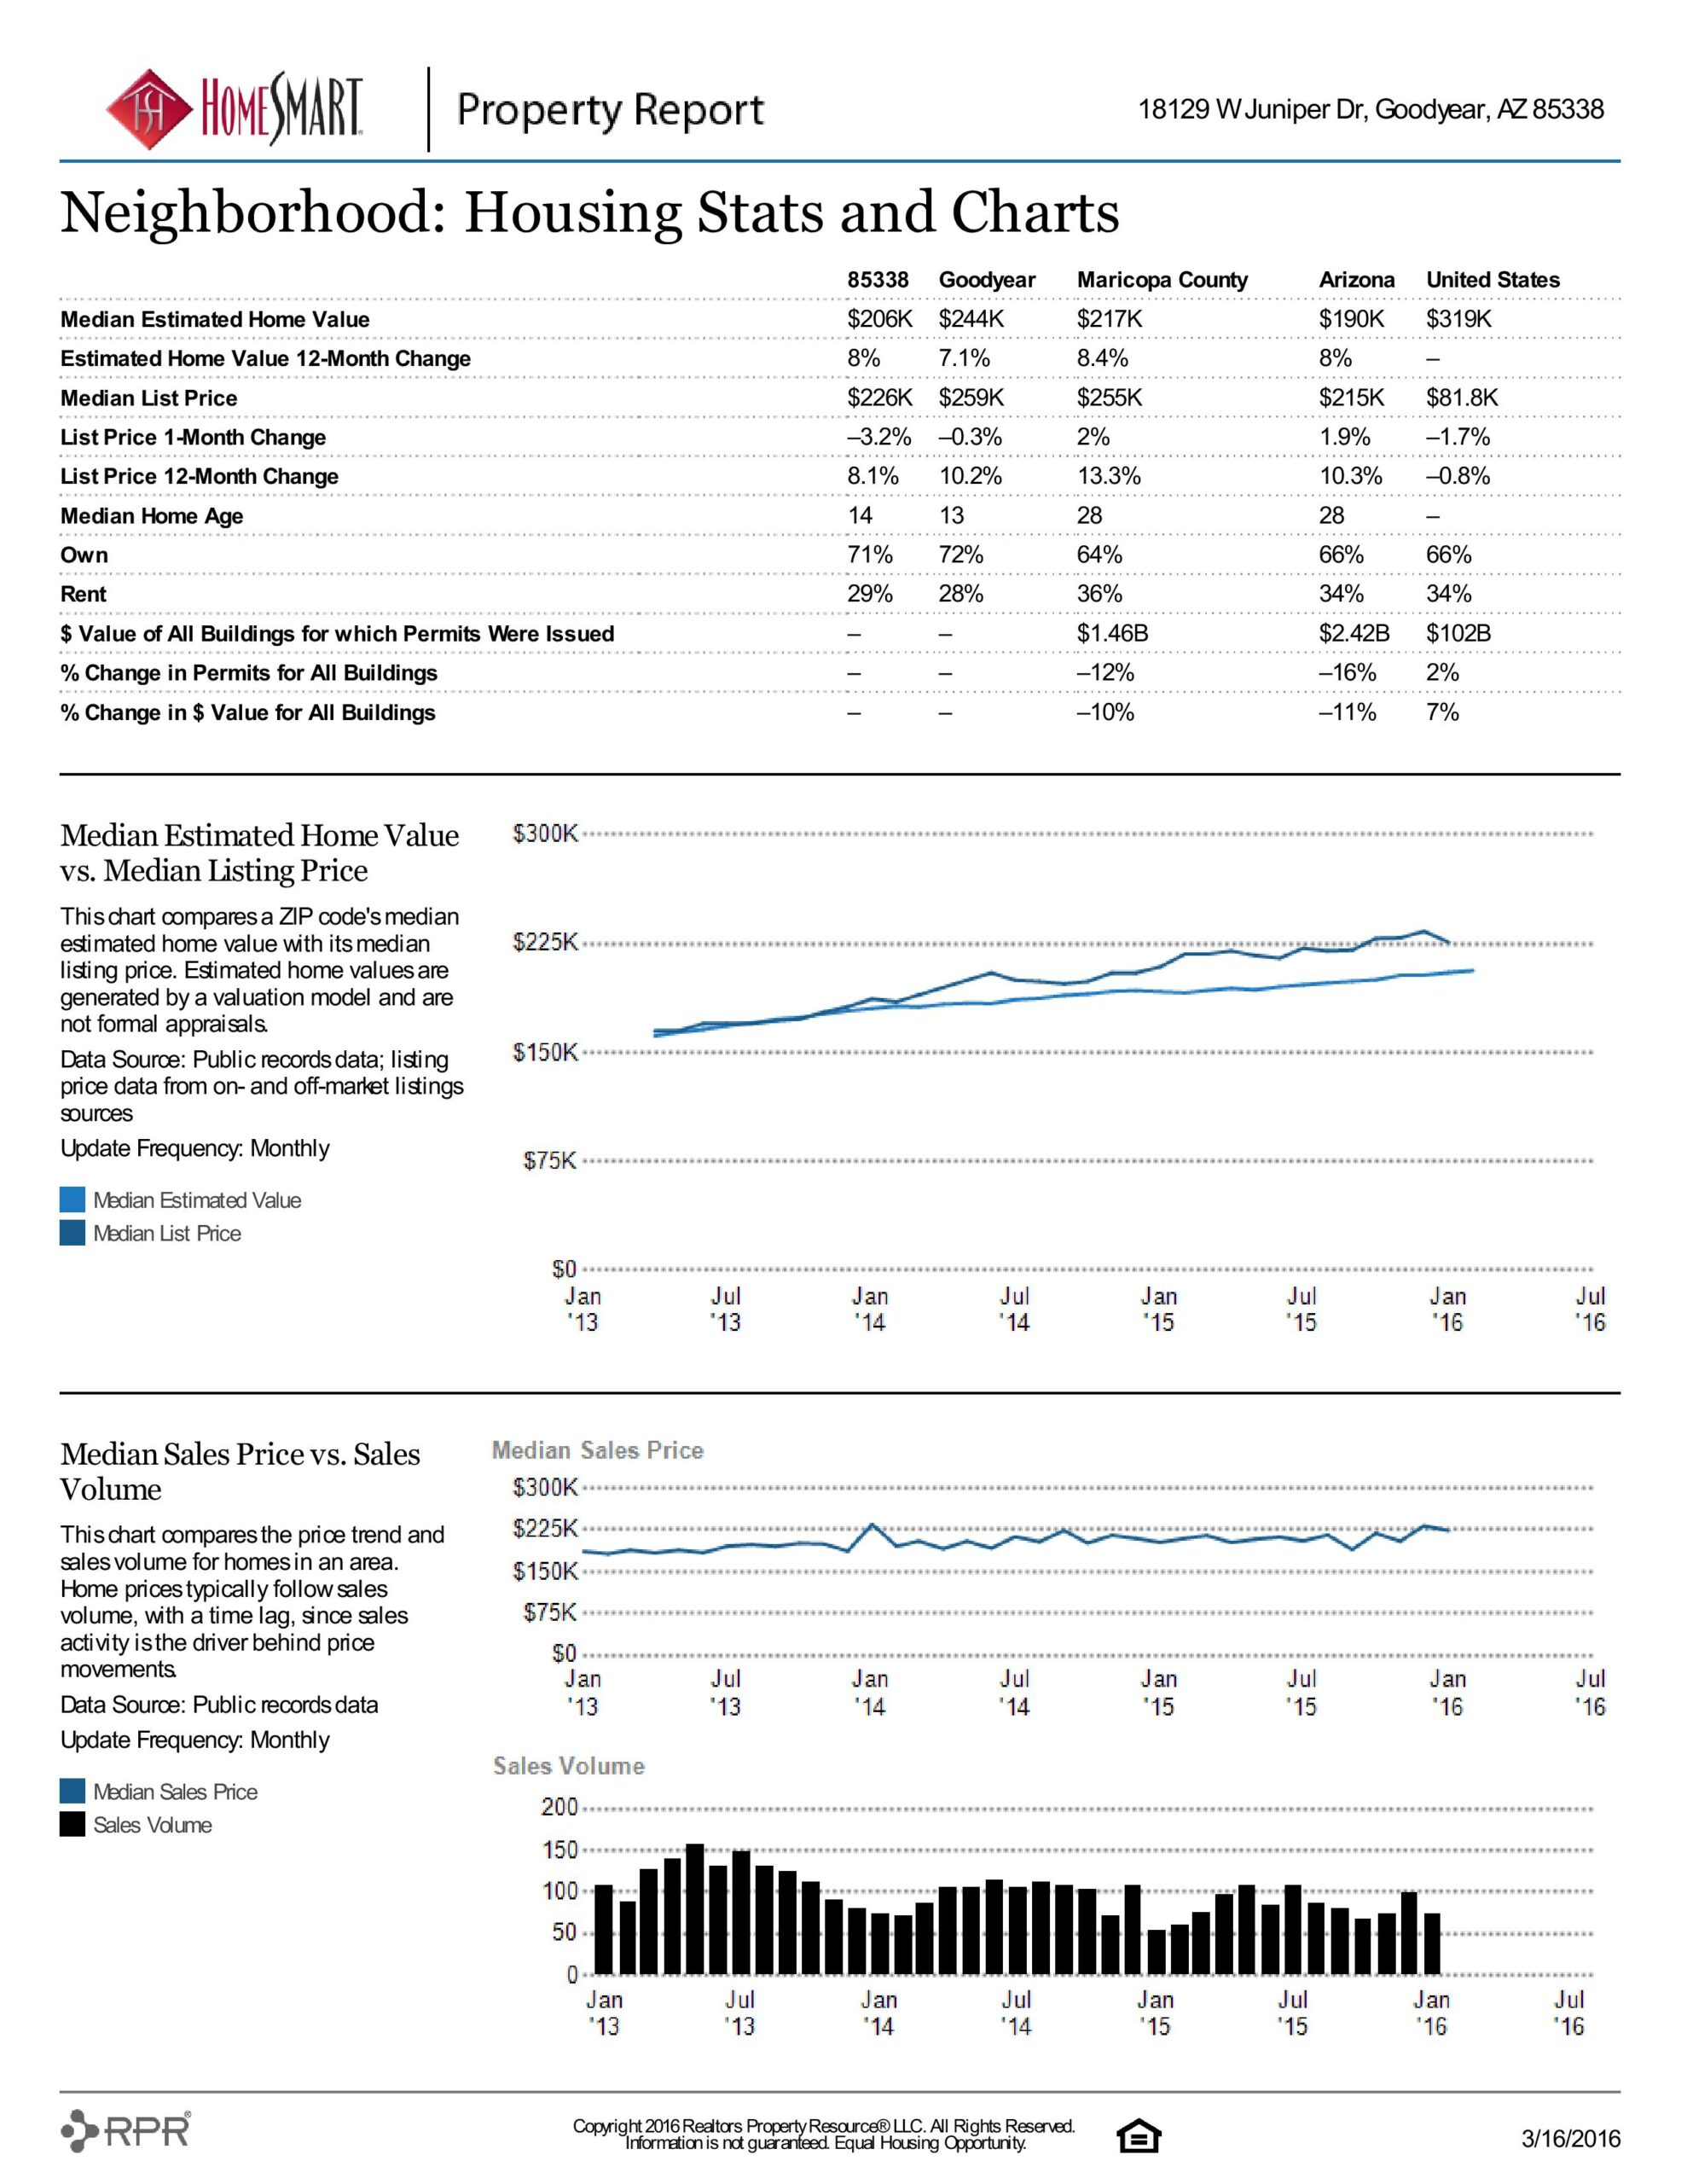 18129 W JUNIPER DR PROPERTY REPORT-page-018